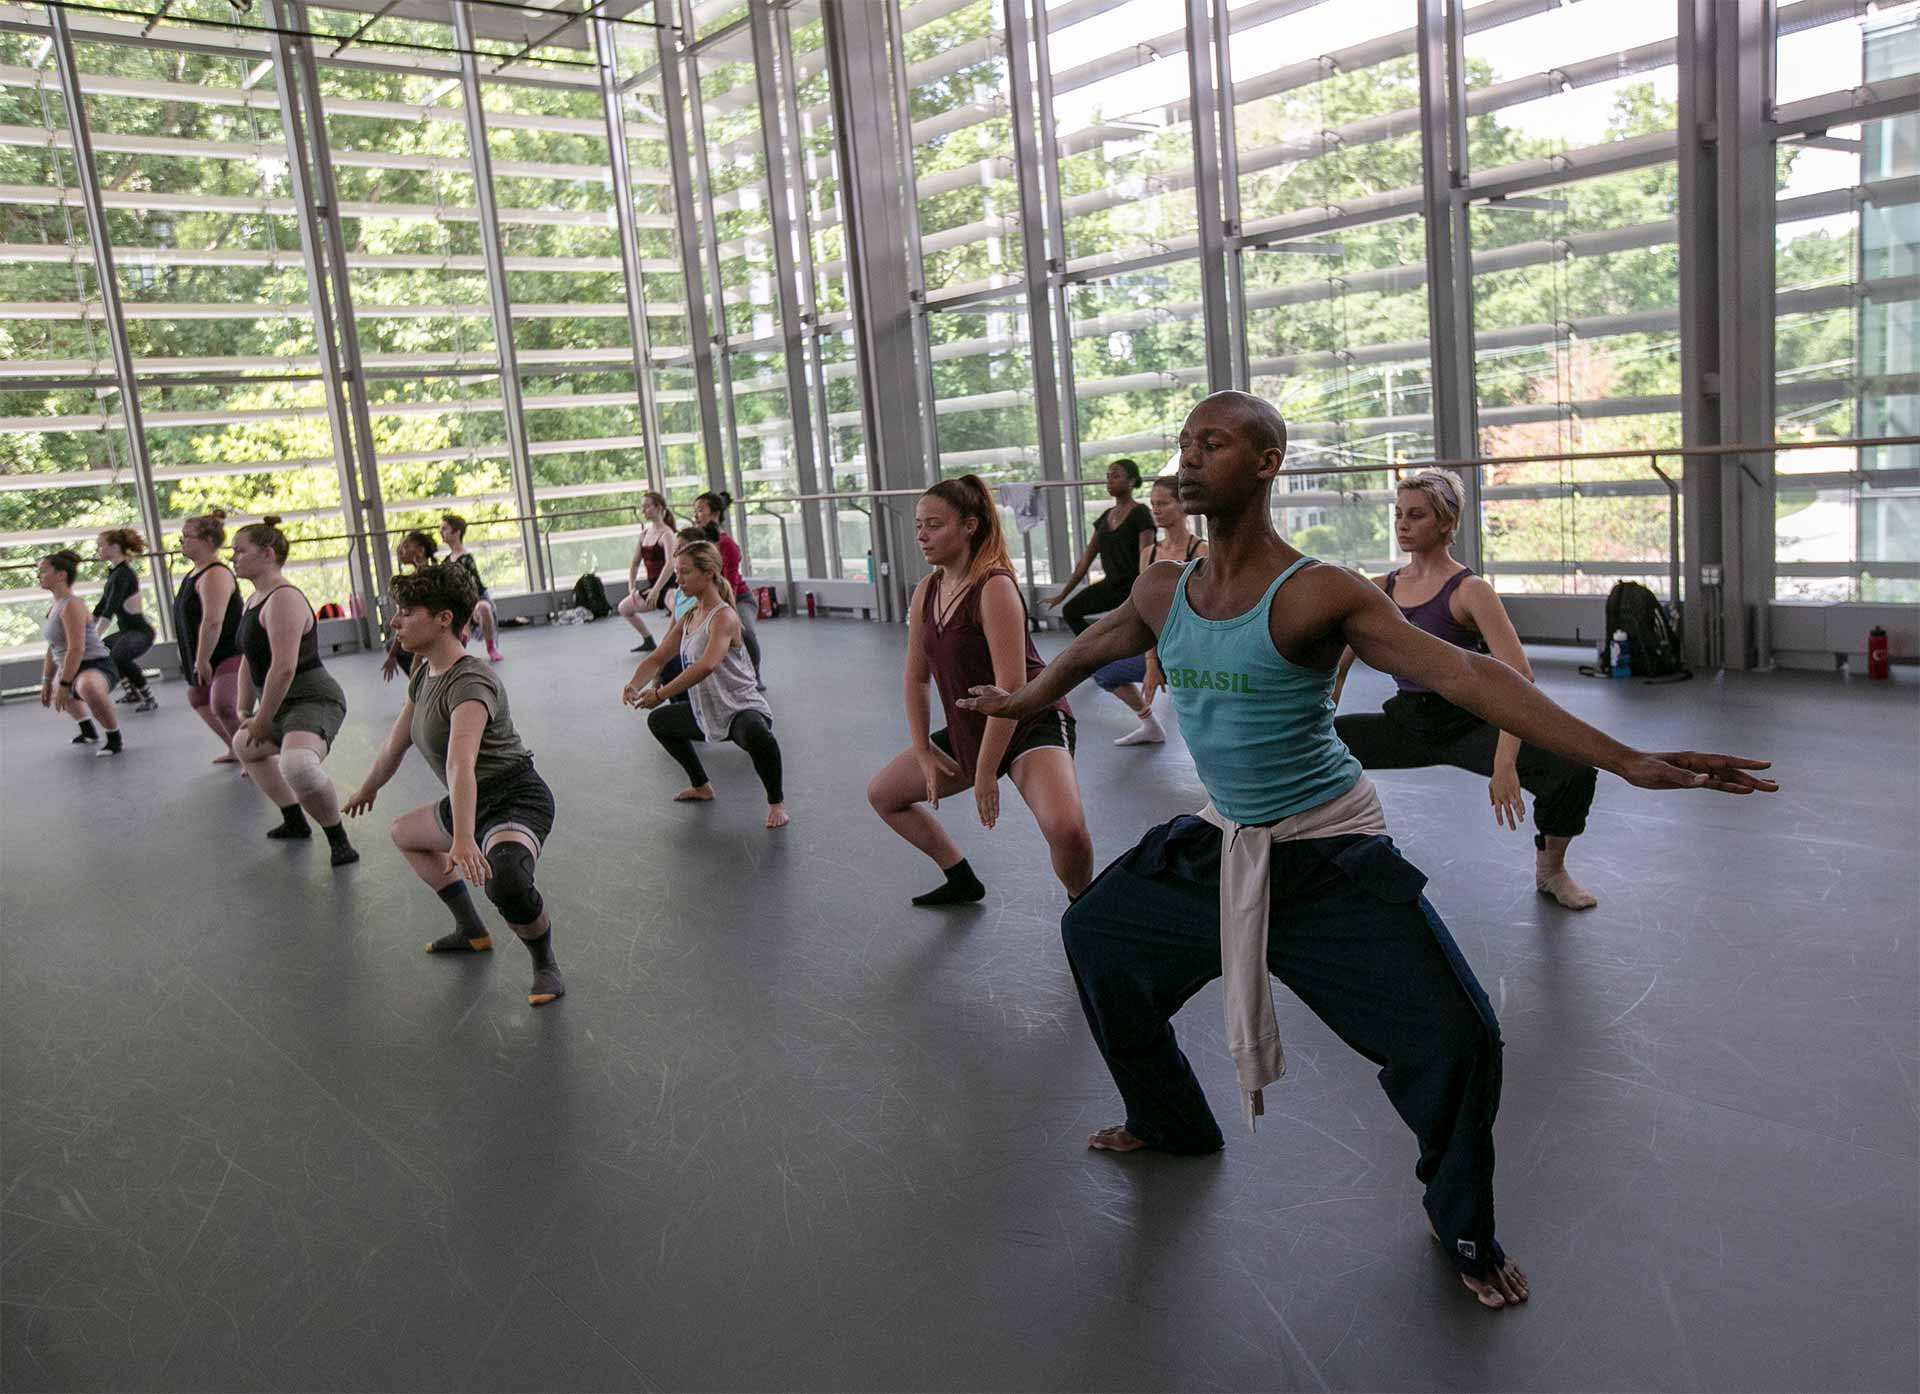 Students take dance courses in the Rubenstein Arts Center at Duke University as part the American Dance Festival.